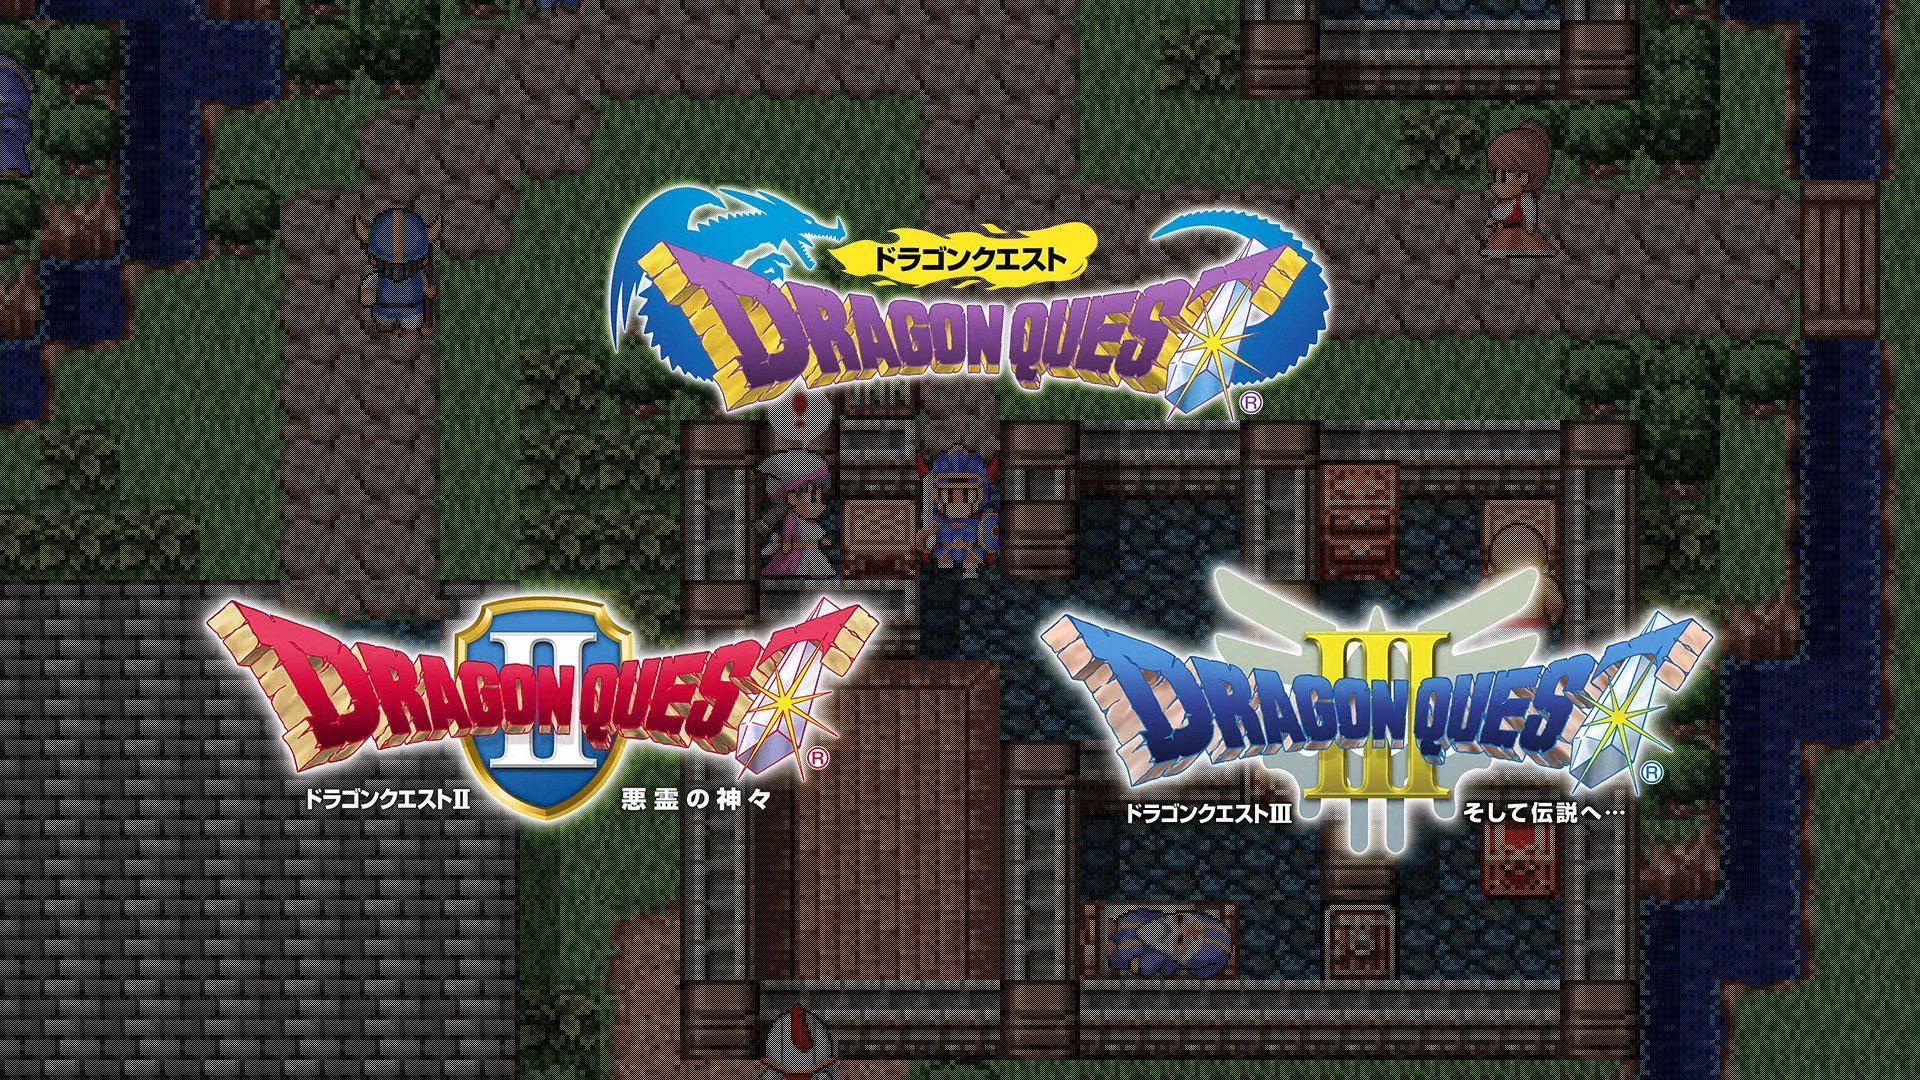 Japanese Releases Of Dragon Quest I, II And III On Switch